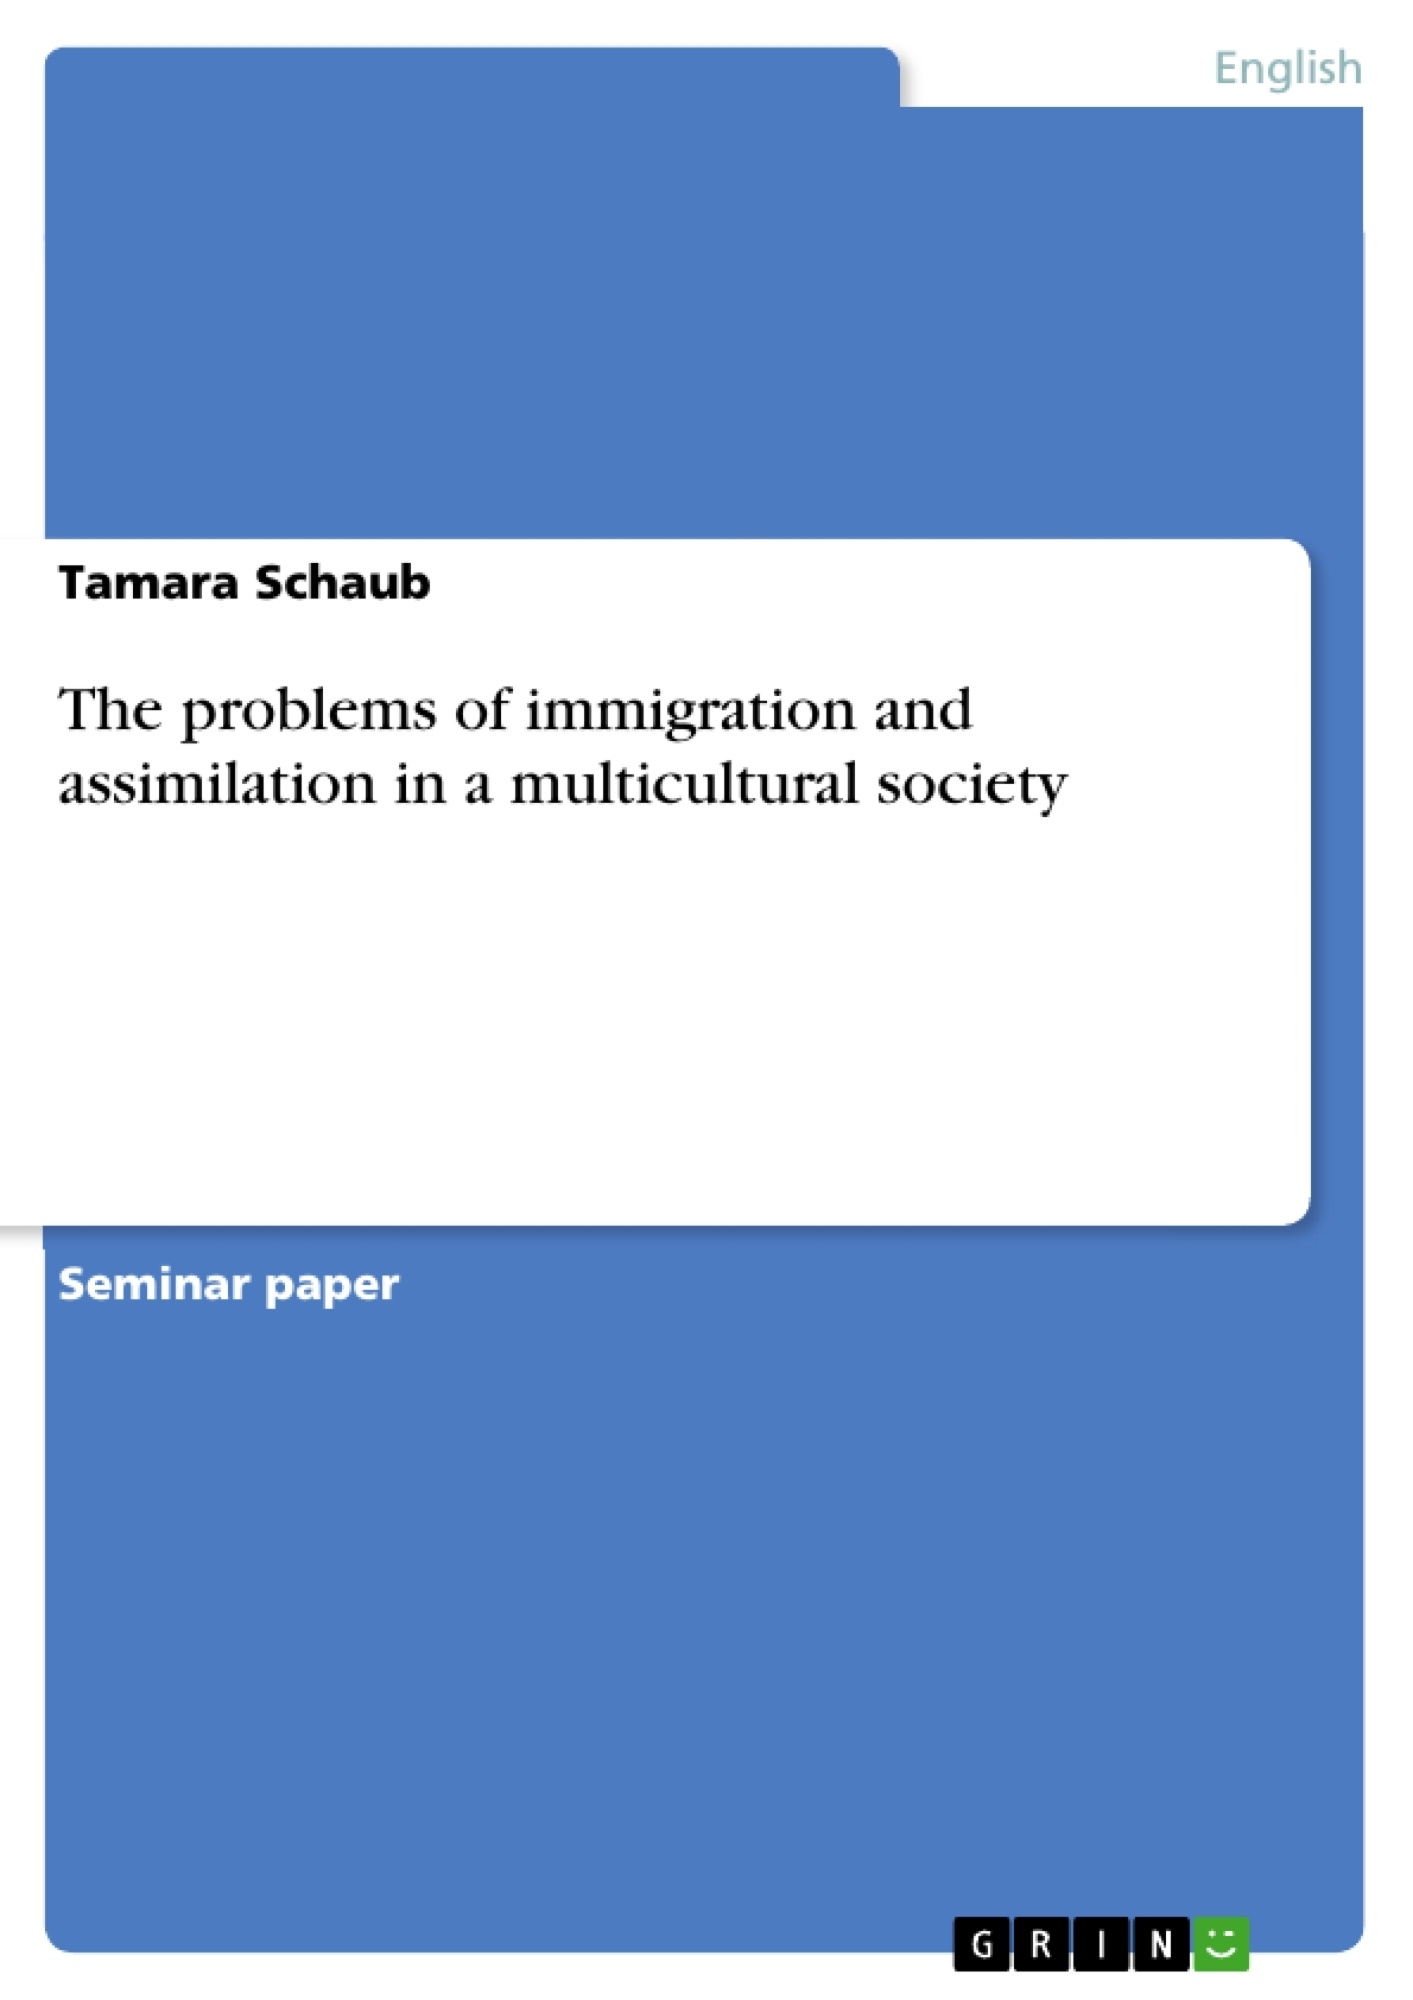 Title: The problems of immigration and assimilation in a multicultural society